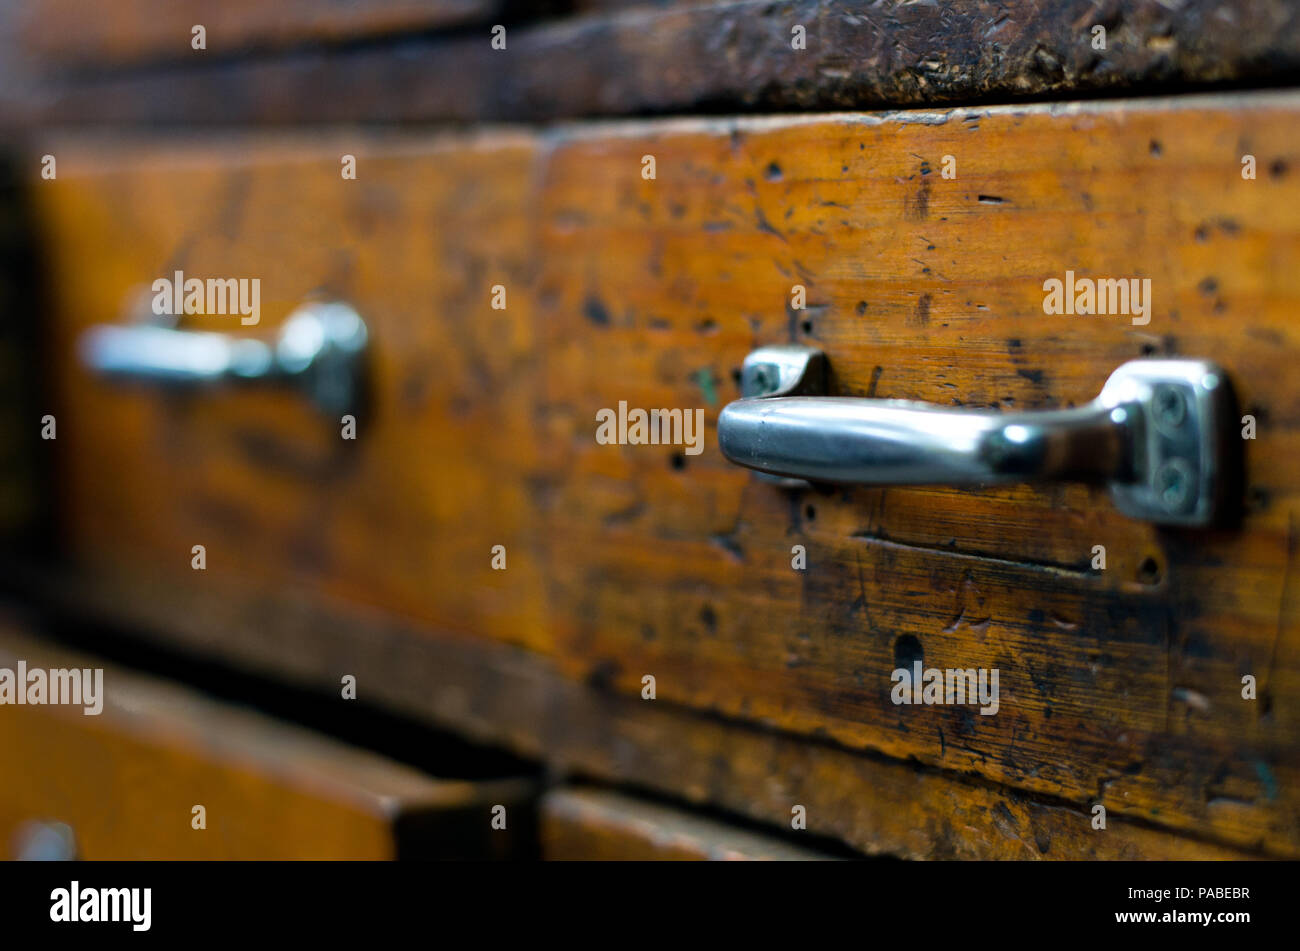 Close up of two wooden drawers with chrome handles, focussing on the handle of the closest drawer. - Stock Image